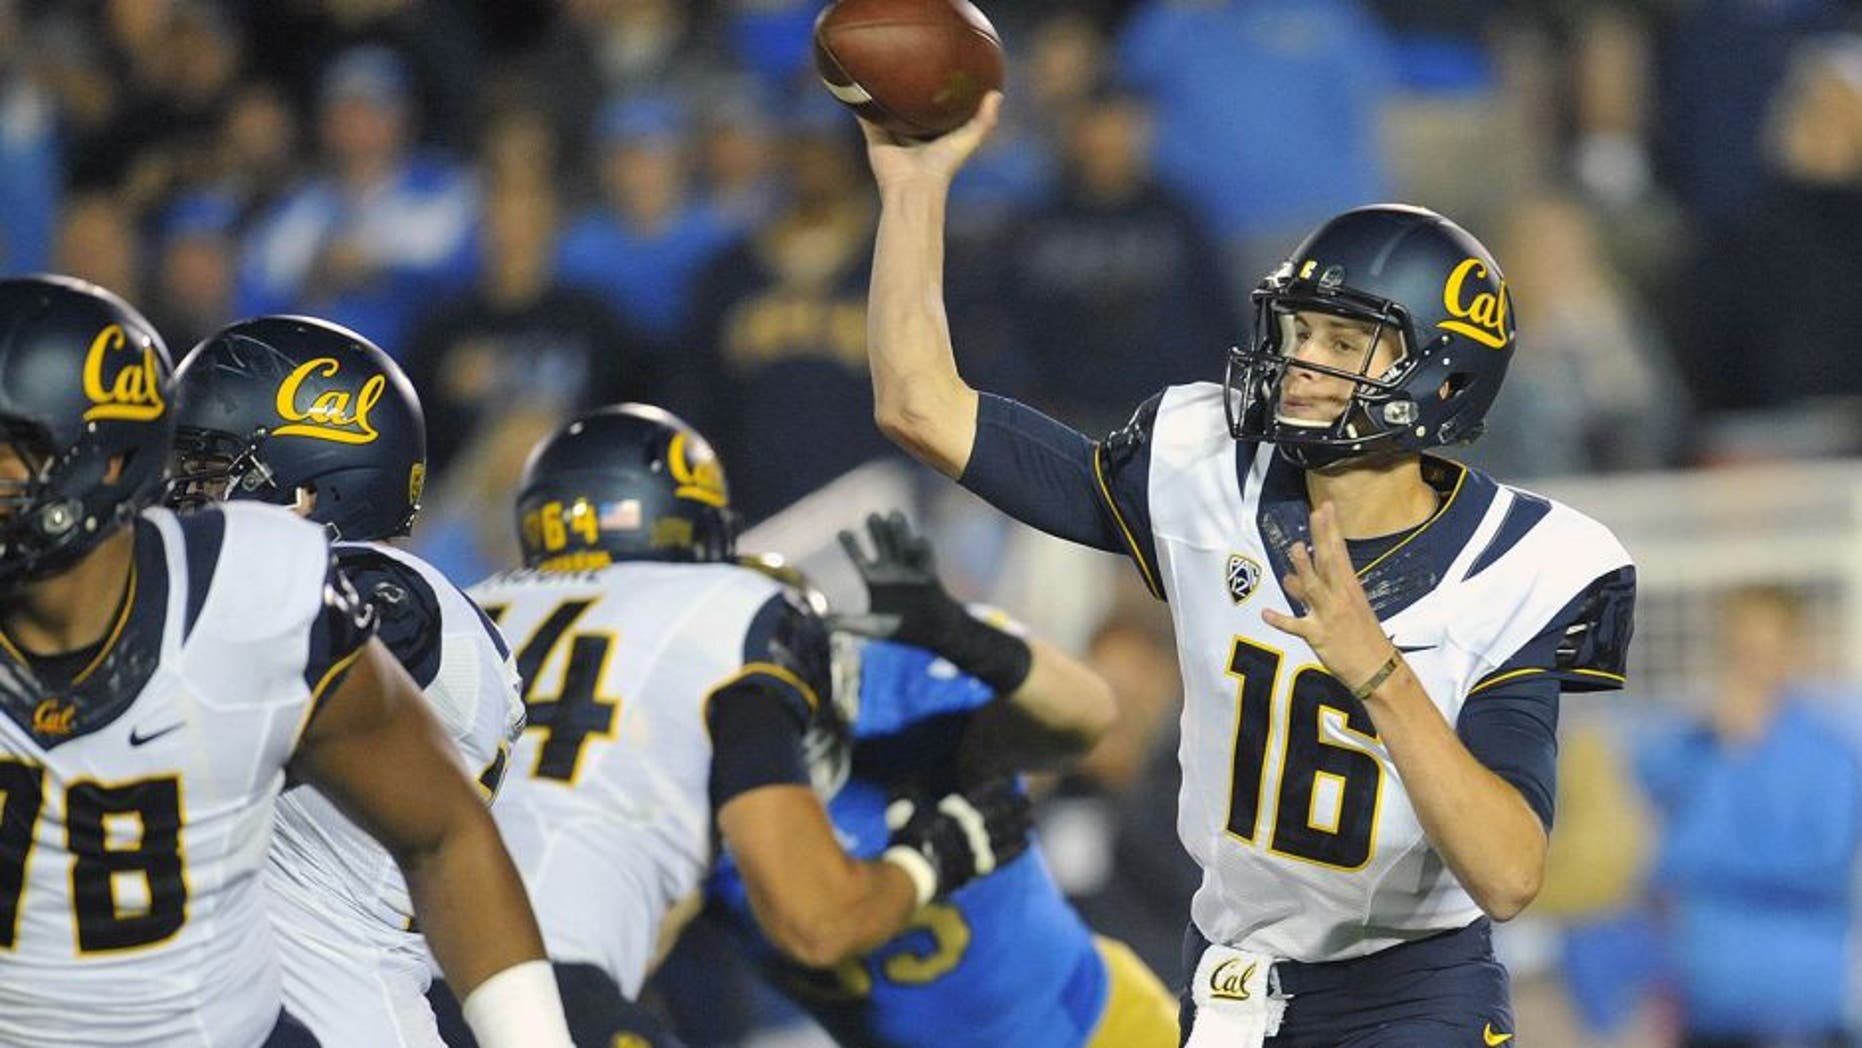 October 12, 2013; Pasadena, CA, USA; California Golden Bears quarterback Jared Goff (16) throws a pass against the UCLA Bruins during the first half at the Rose Bowl. Mandatory Credit: Gary A. Vasquez-USA TODAY Sports